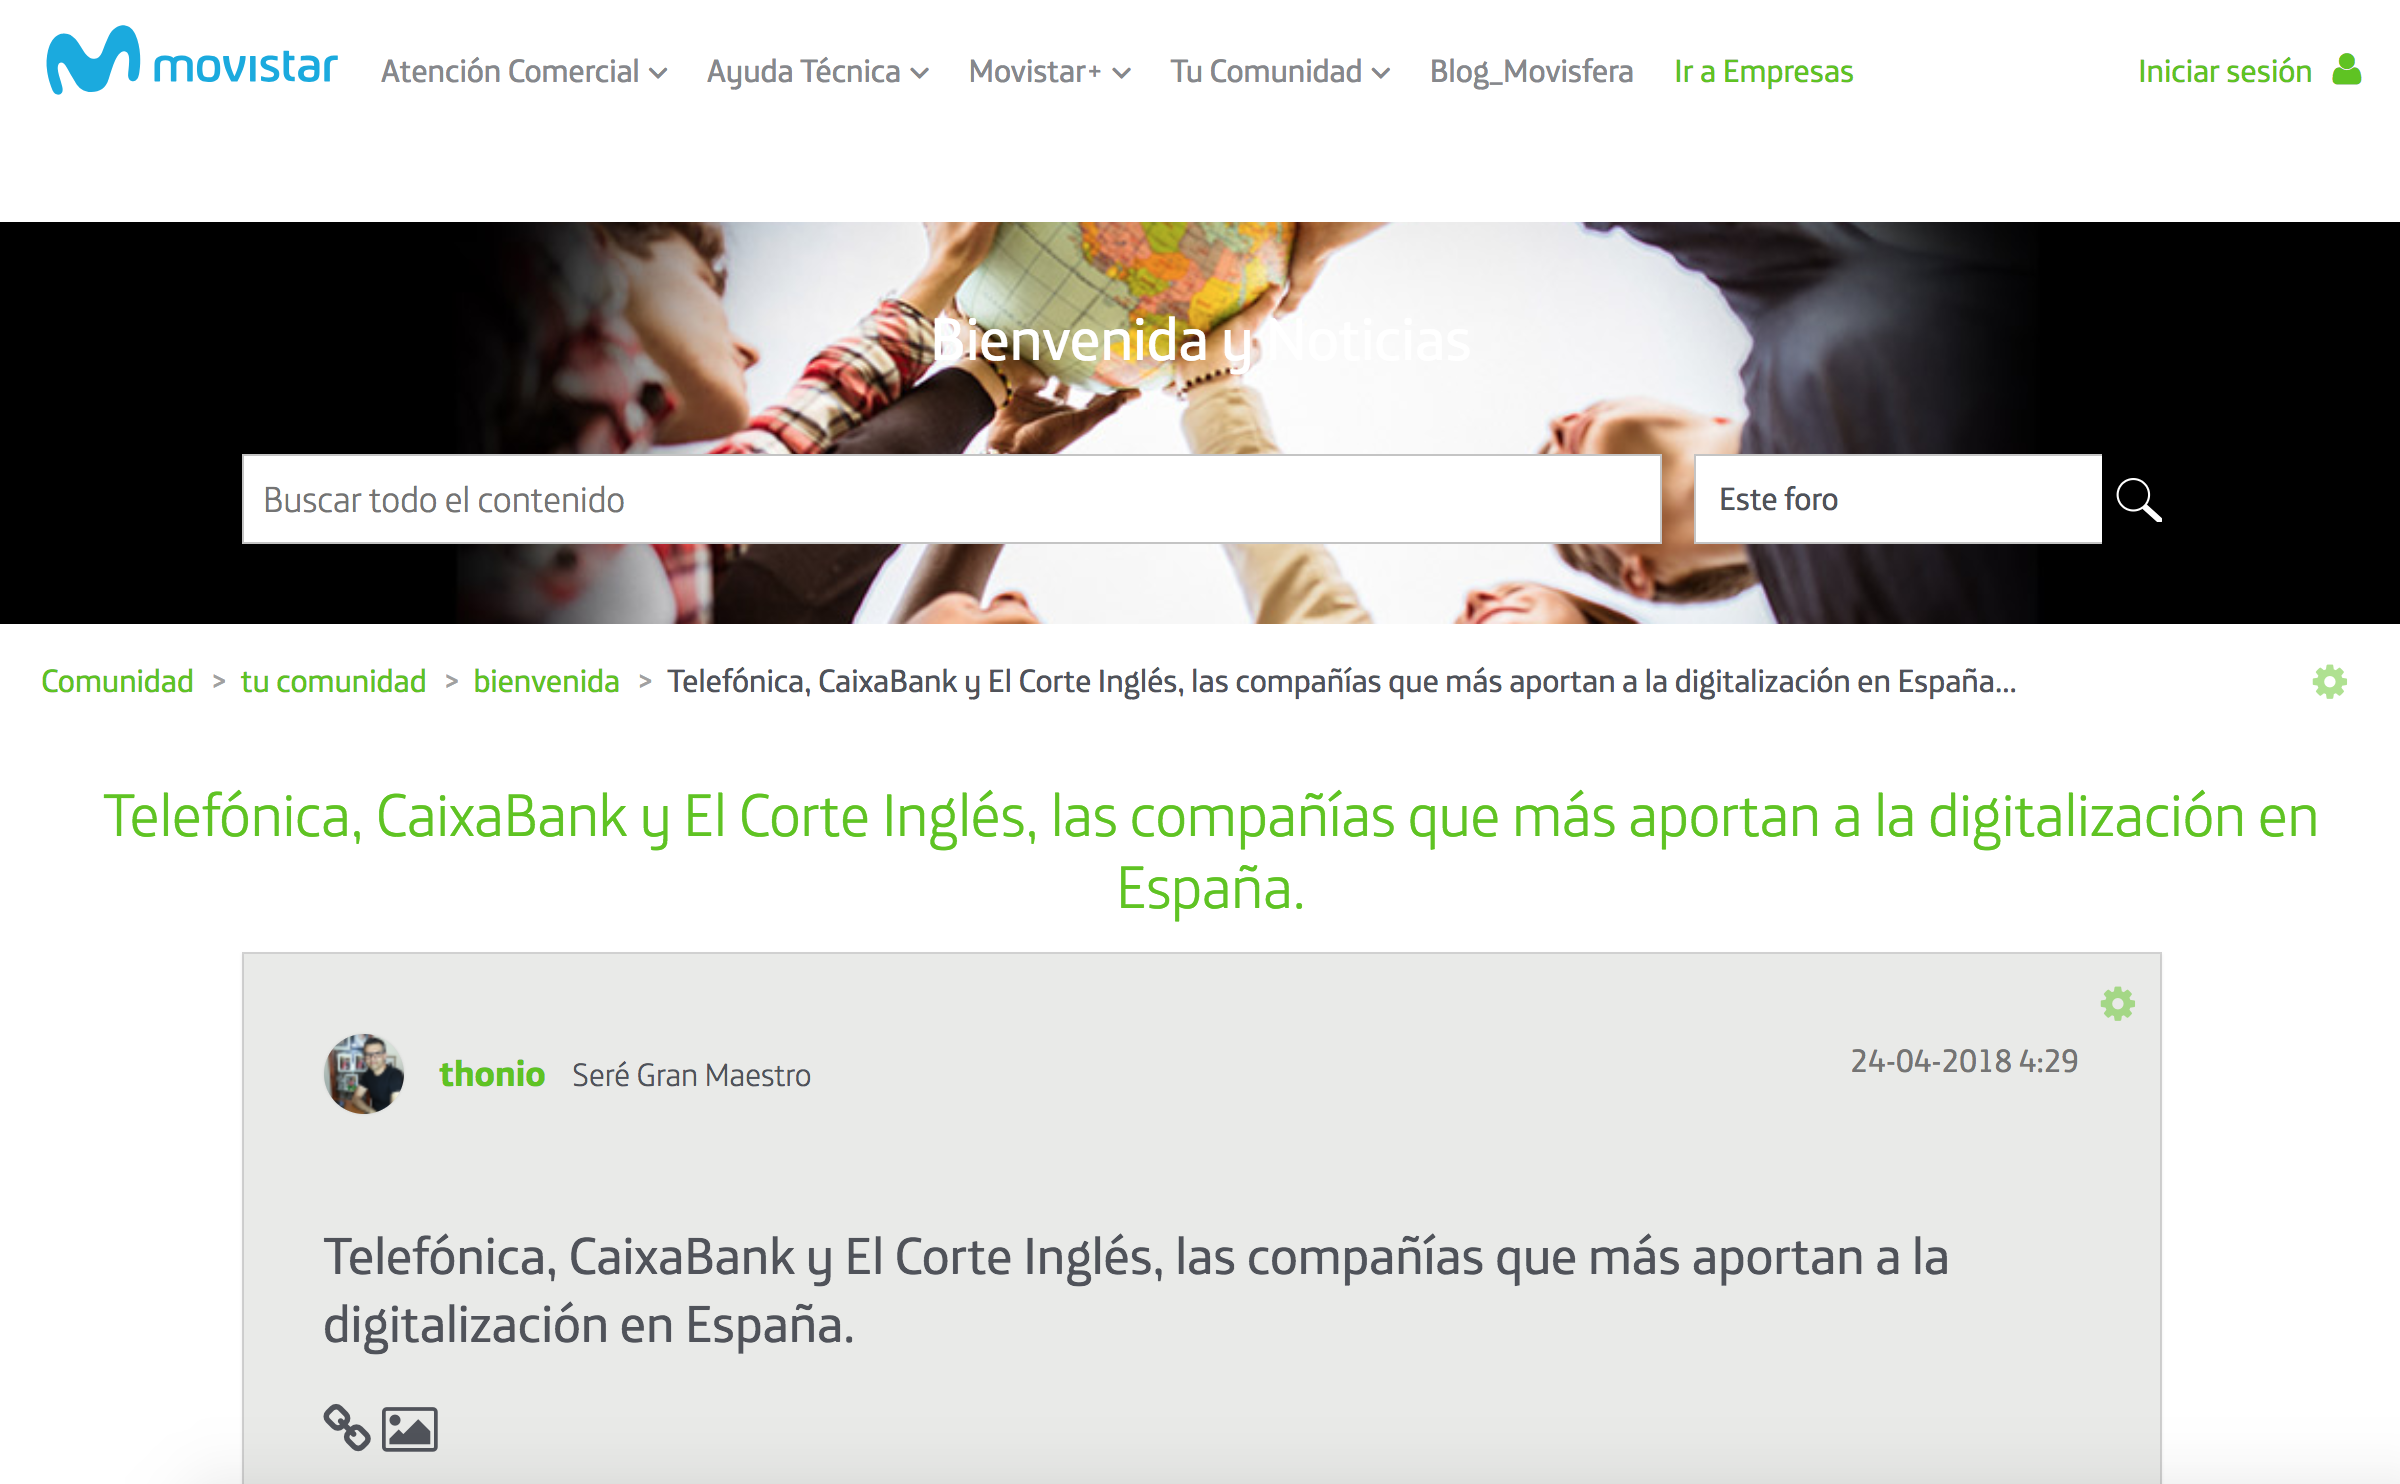 Noticia sobre Estudio Advice Éxito Empresarial en Comunidad Movistar